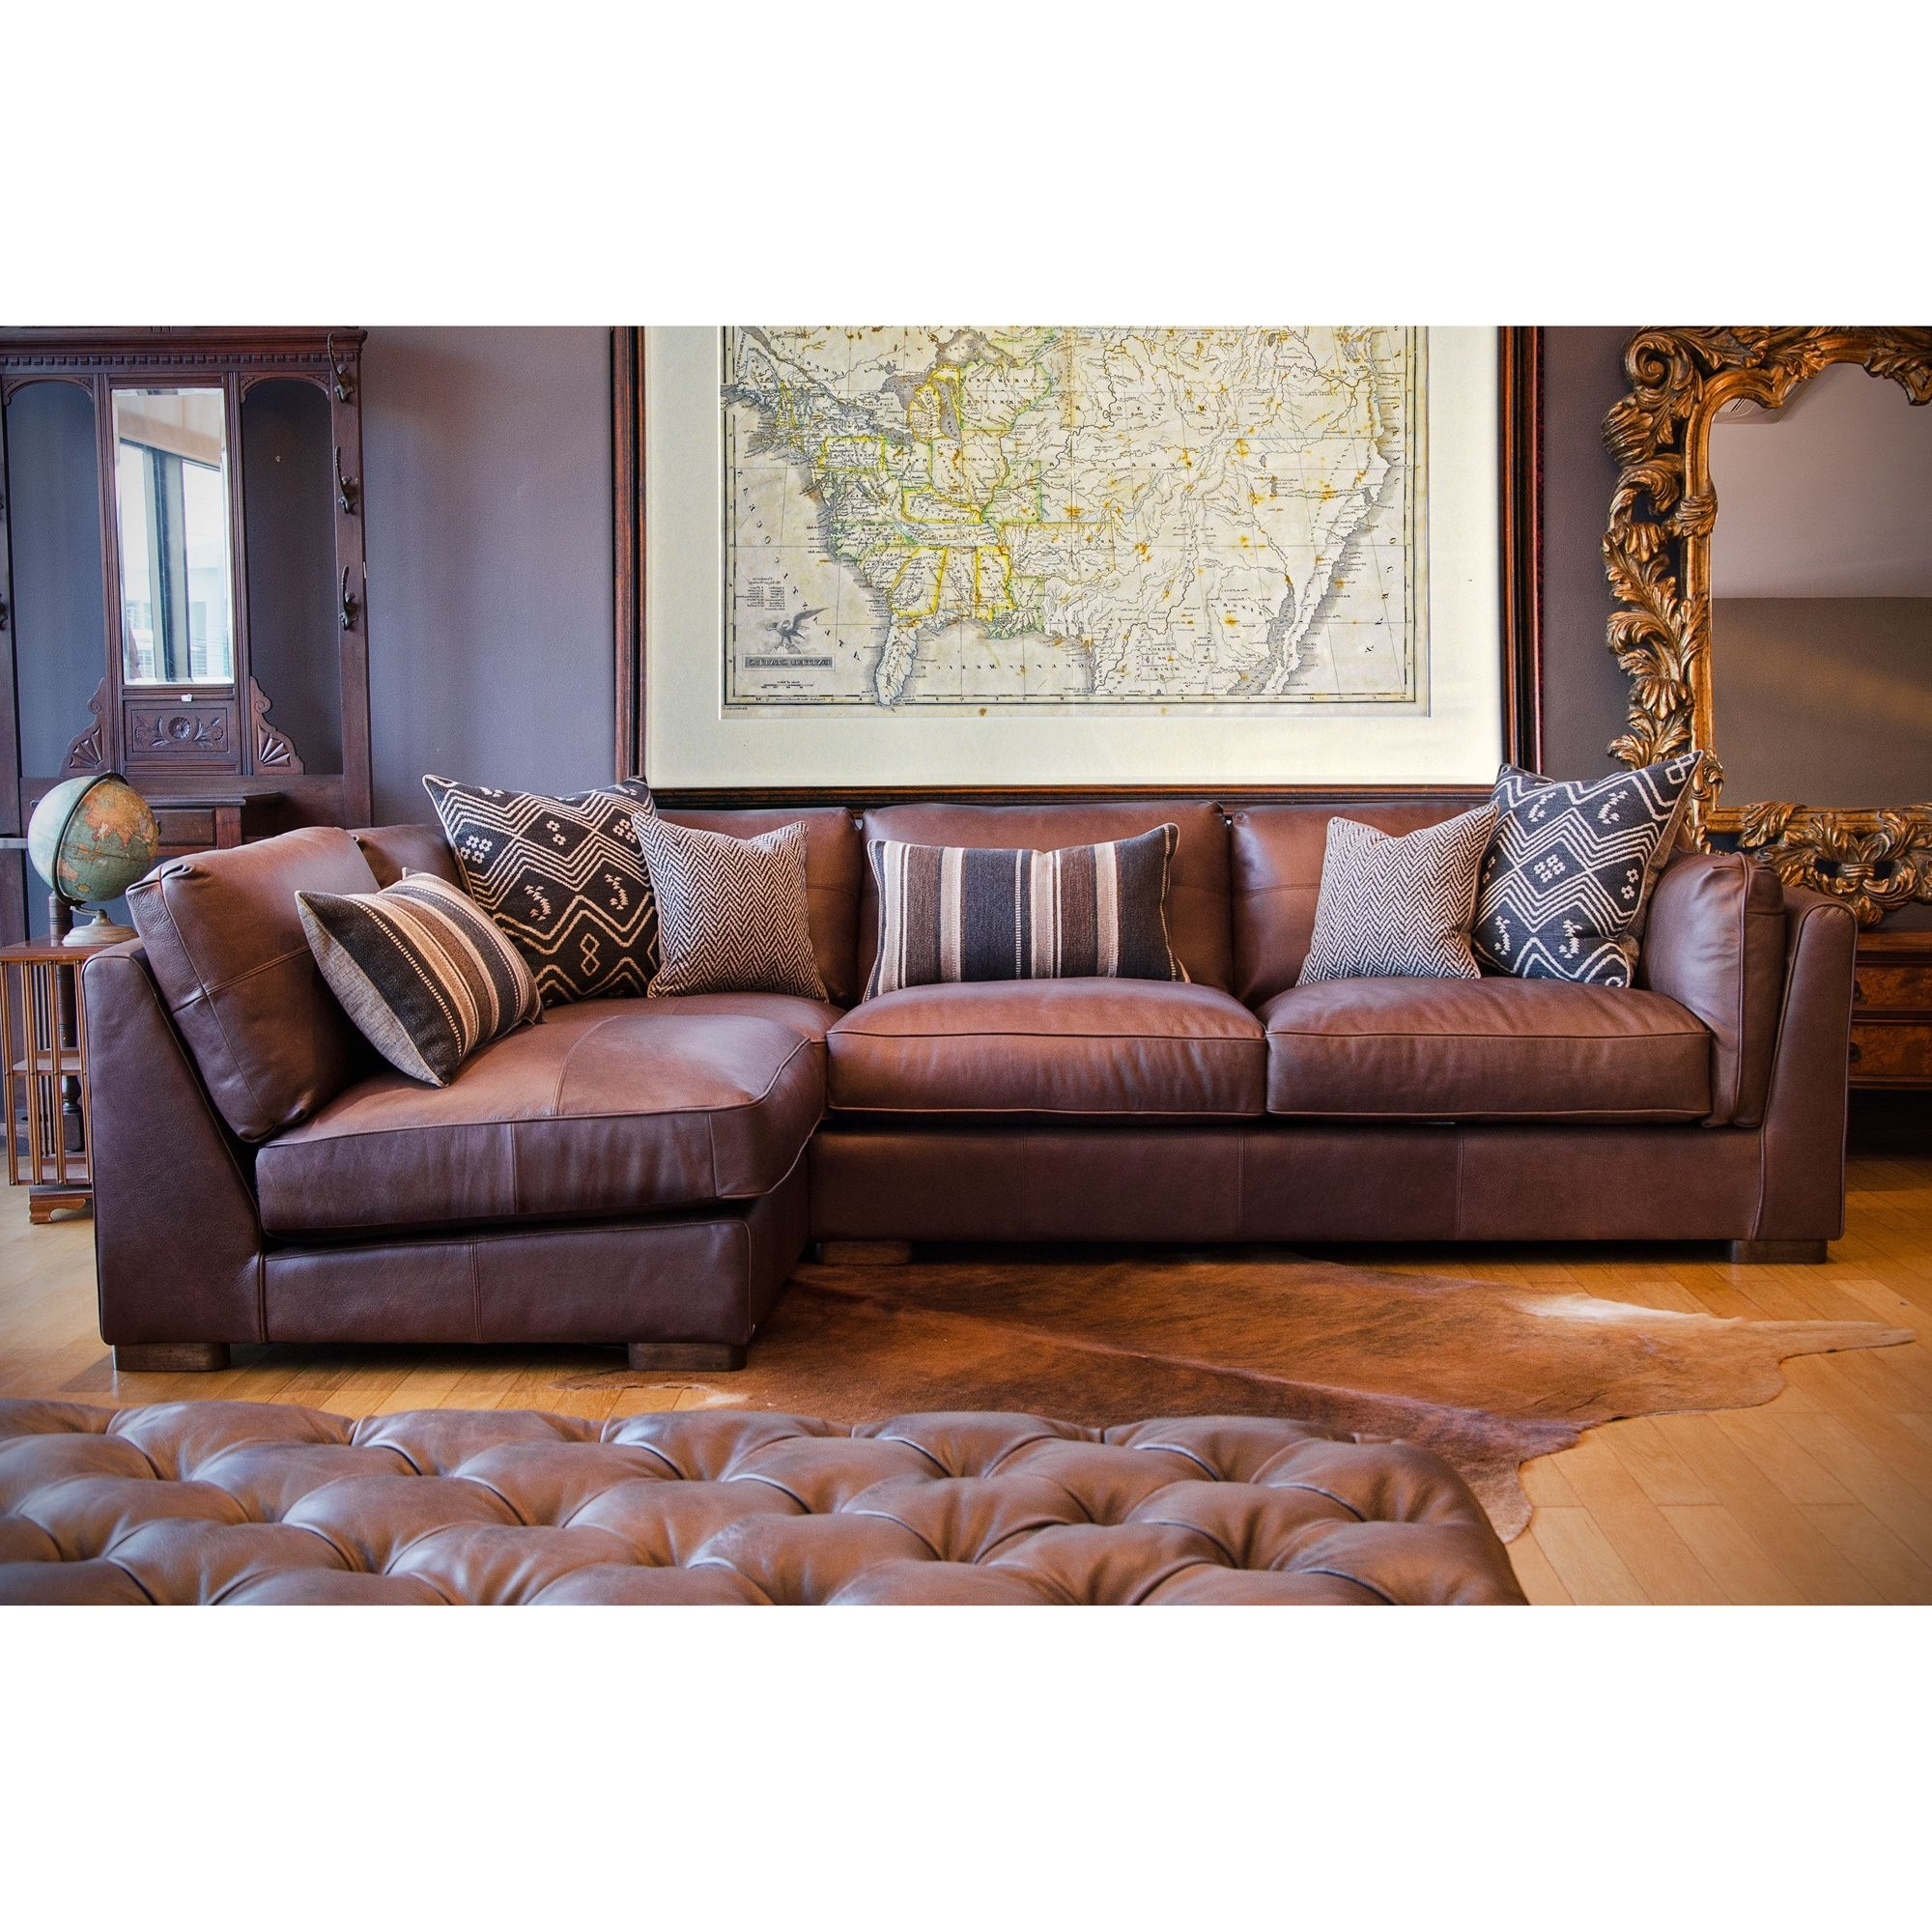 Trendy Enrich Your Home Decor With The Understated Elegance Of This Regarding Phoenix Arizona Sectional Sofas (View 13 of 20)